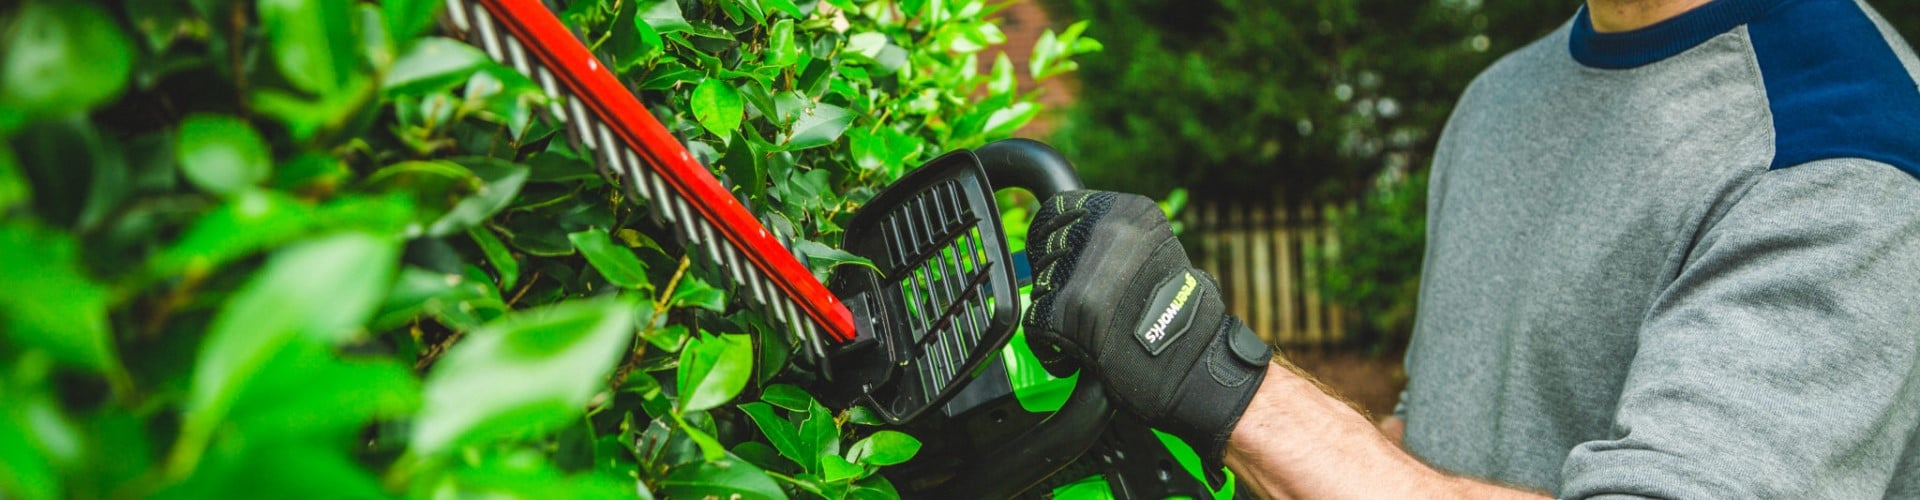 6 Best Electric Hedge Trimmers – Work Is Done Even Faster